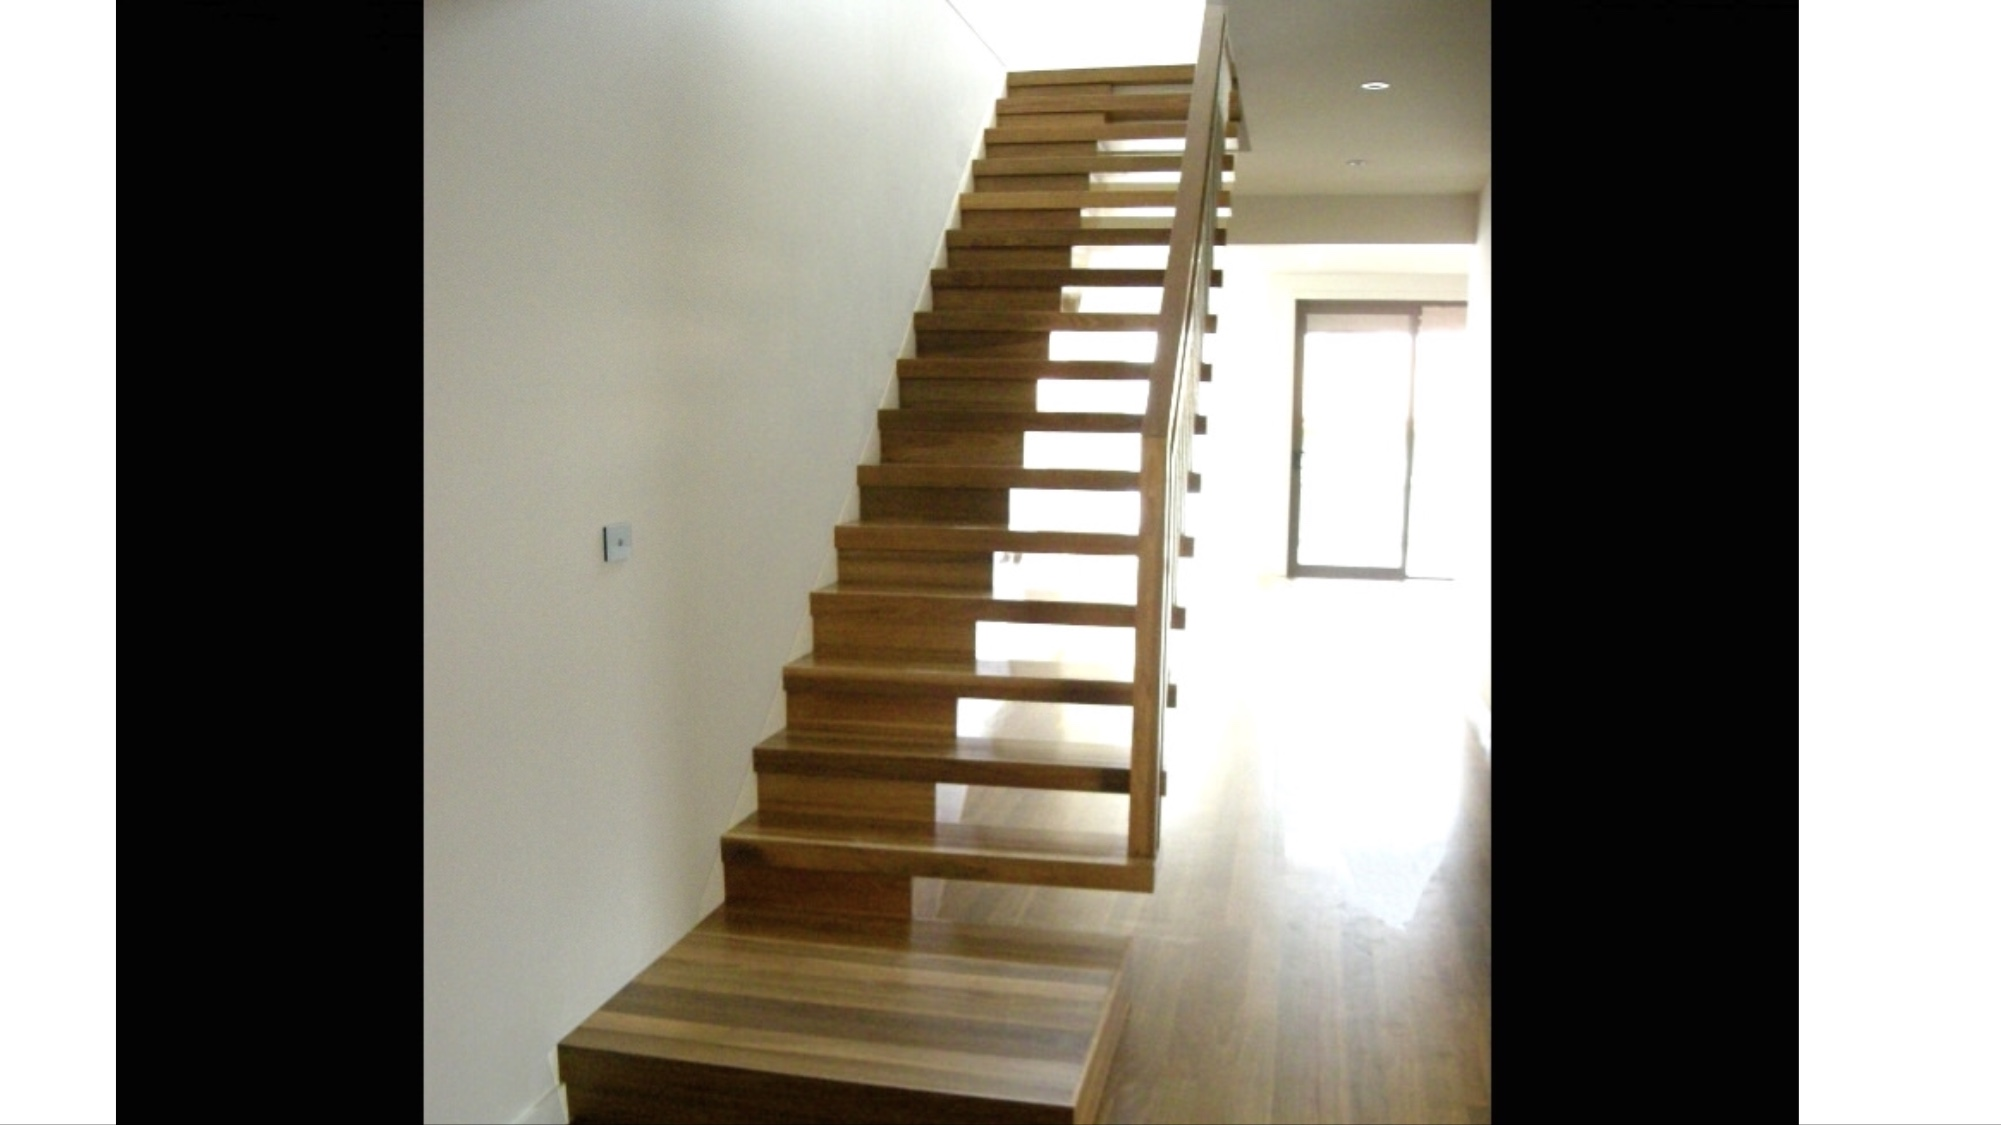 Open vs closed staircases - which ones better?